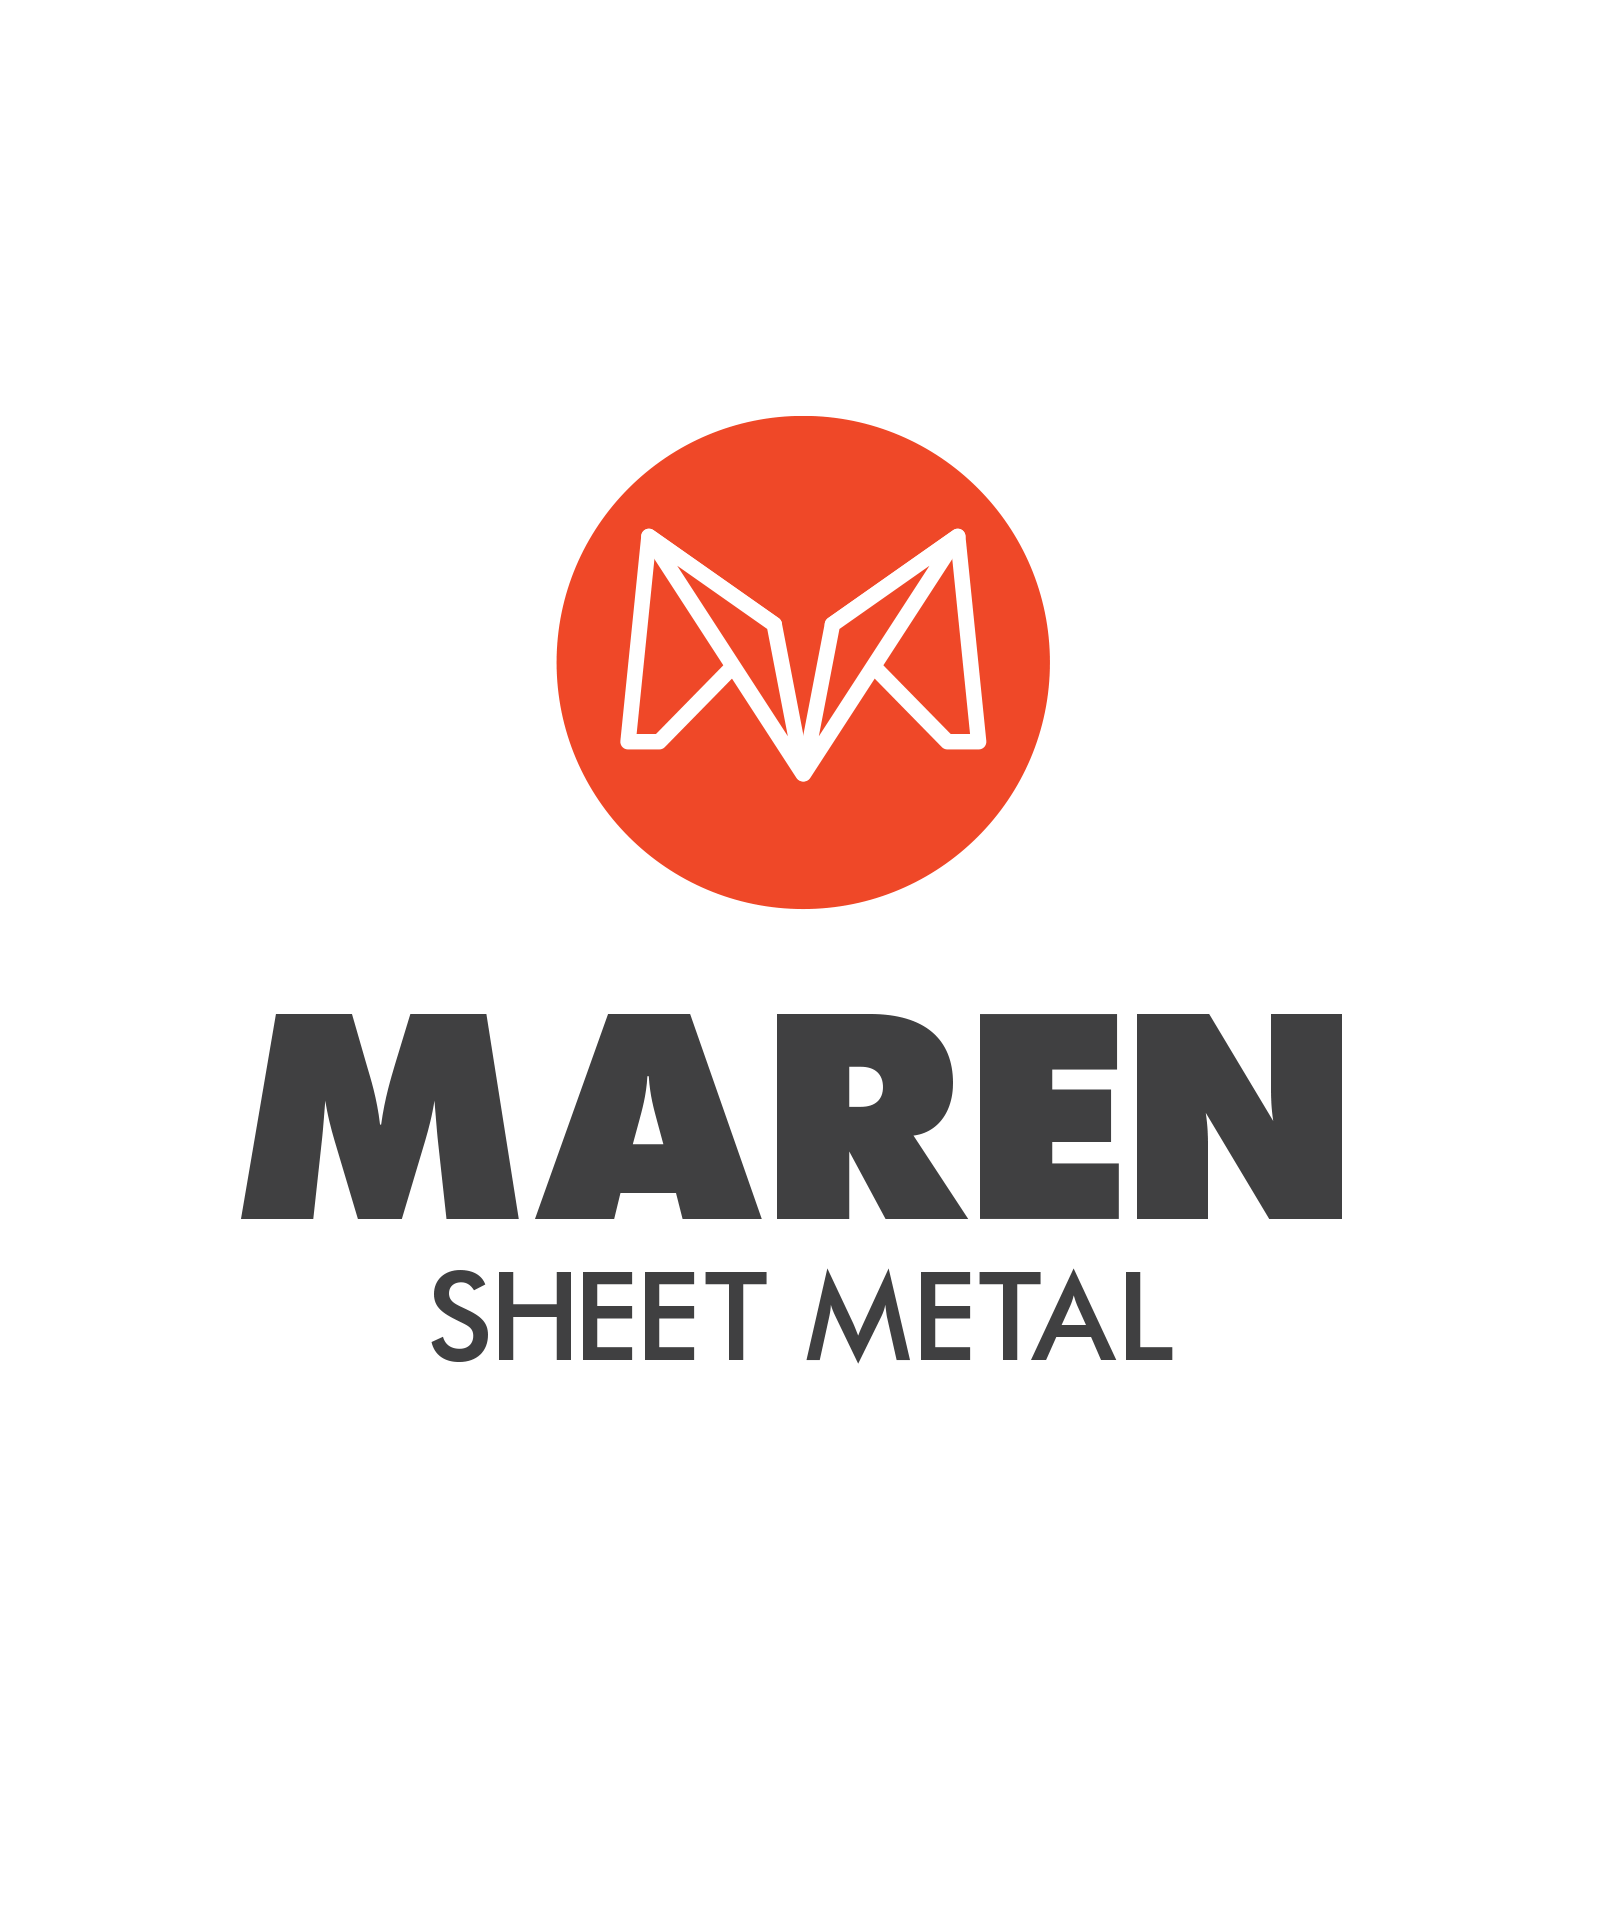 Logo design for sheet metal company